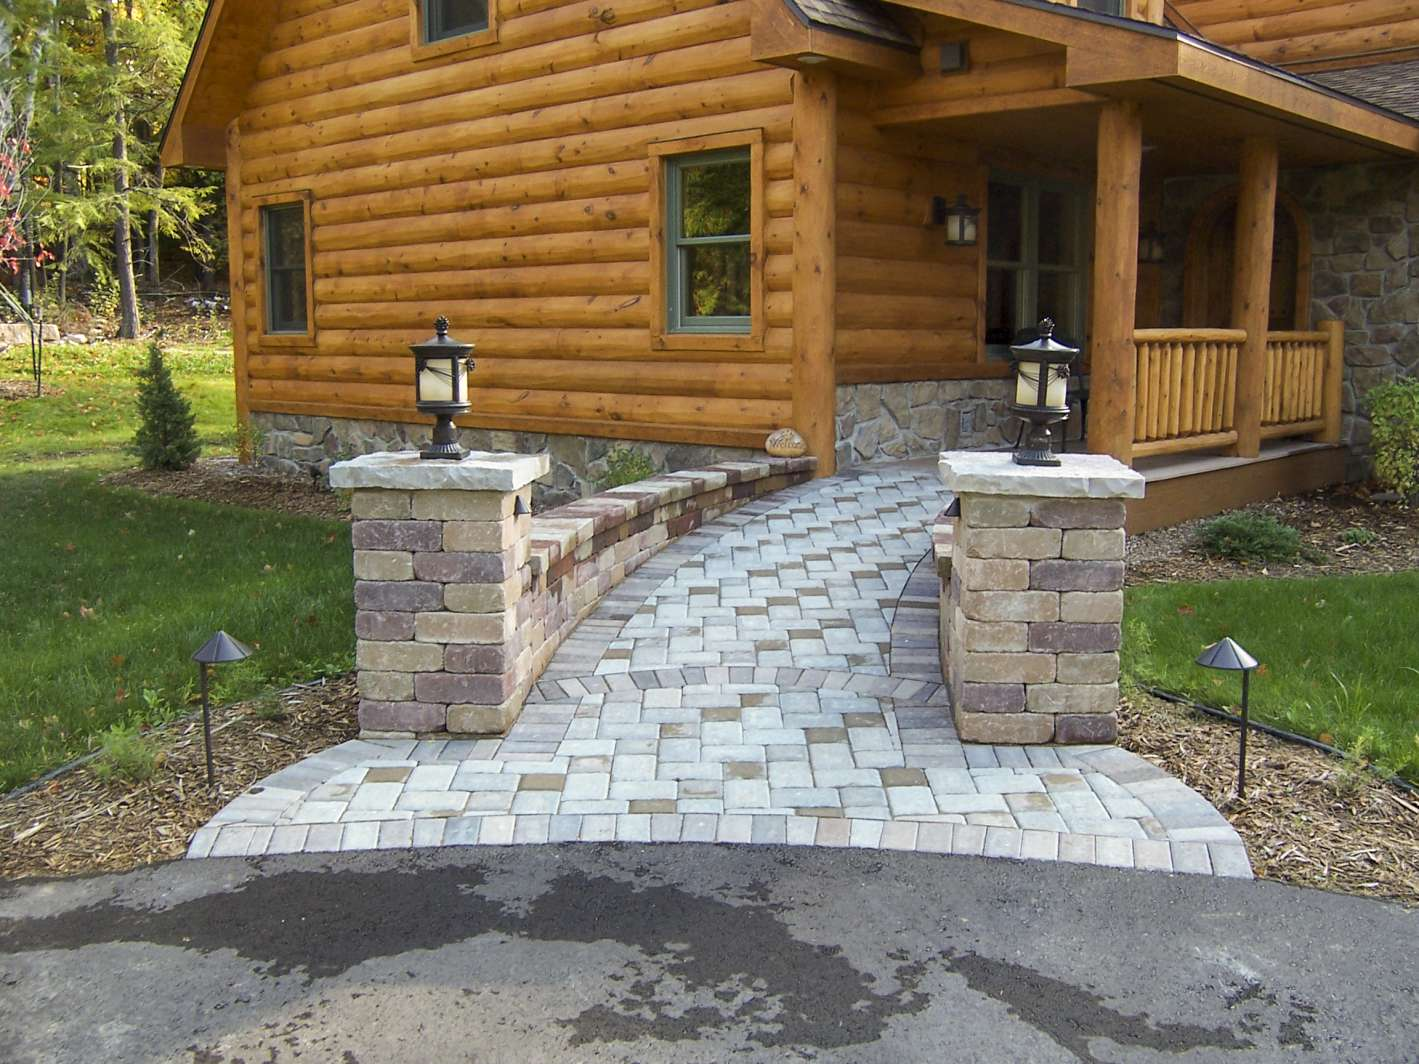 Landscaping Design of Patios, Walkways, and Paths, in ... on Landscaping And Patios id=40806